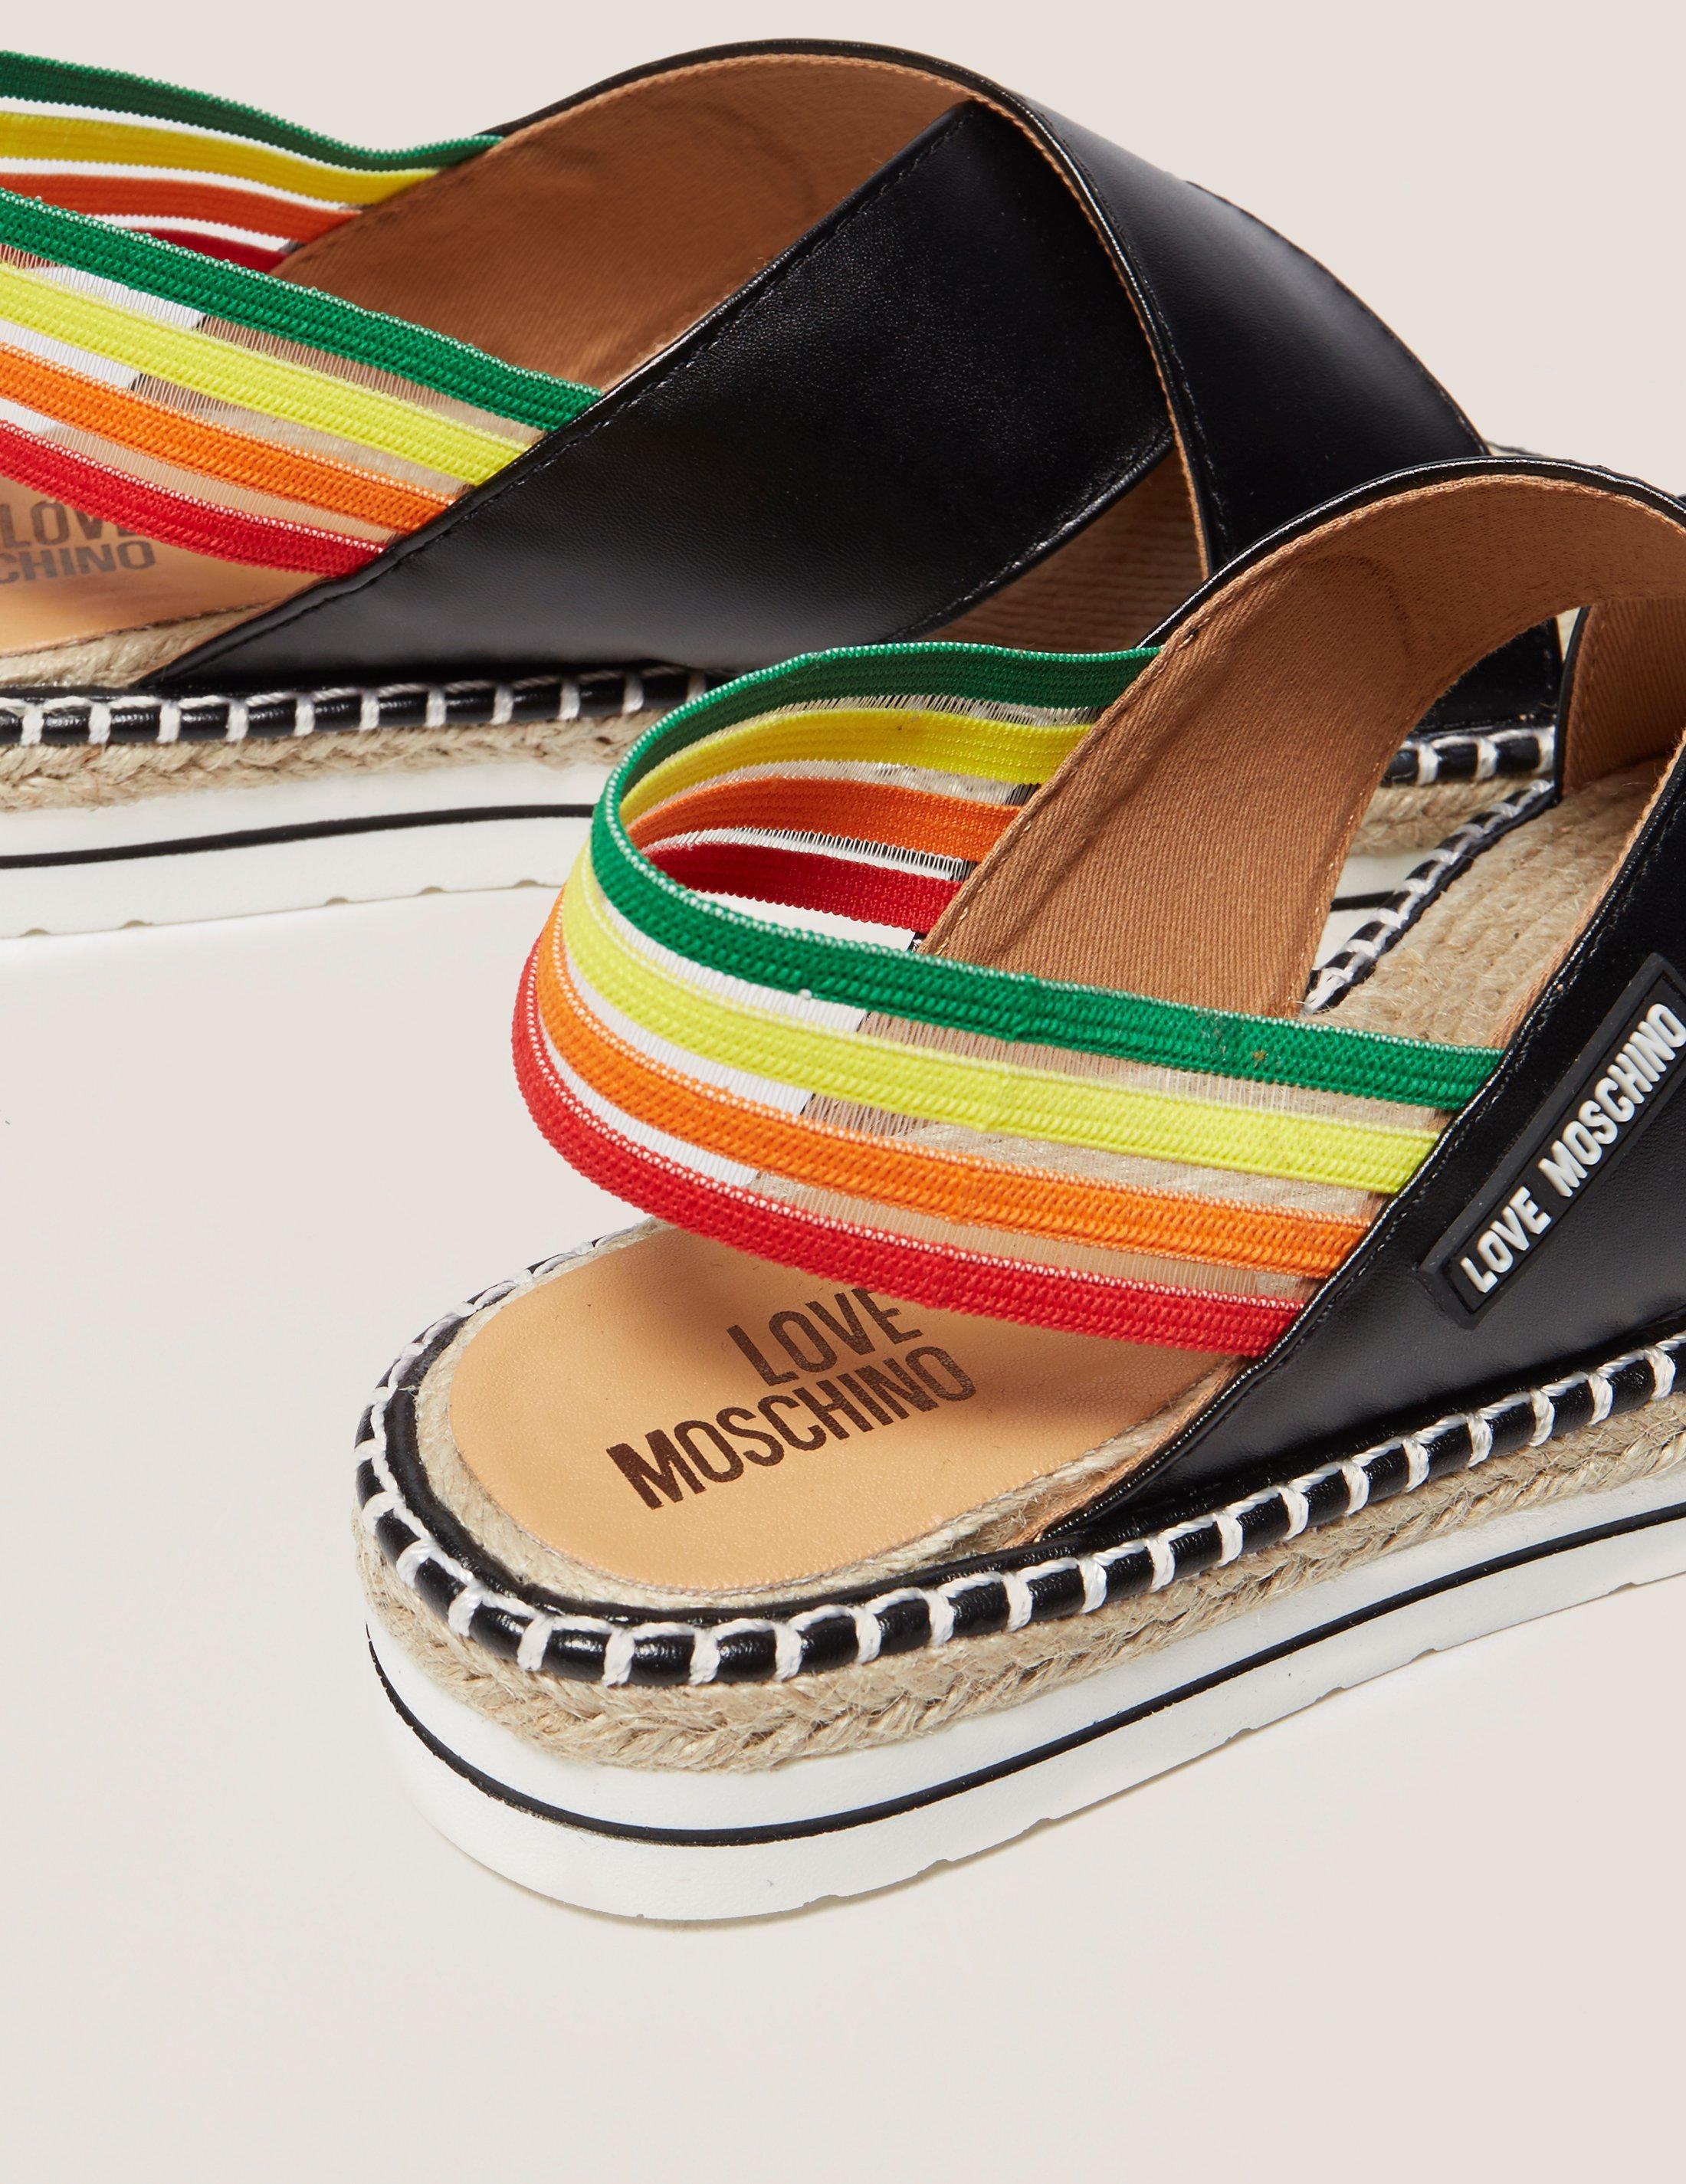 adc499b31a1a Love Moschino Rainbow Sandals in Black - Lyst